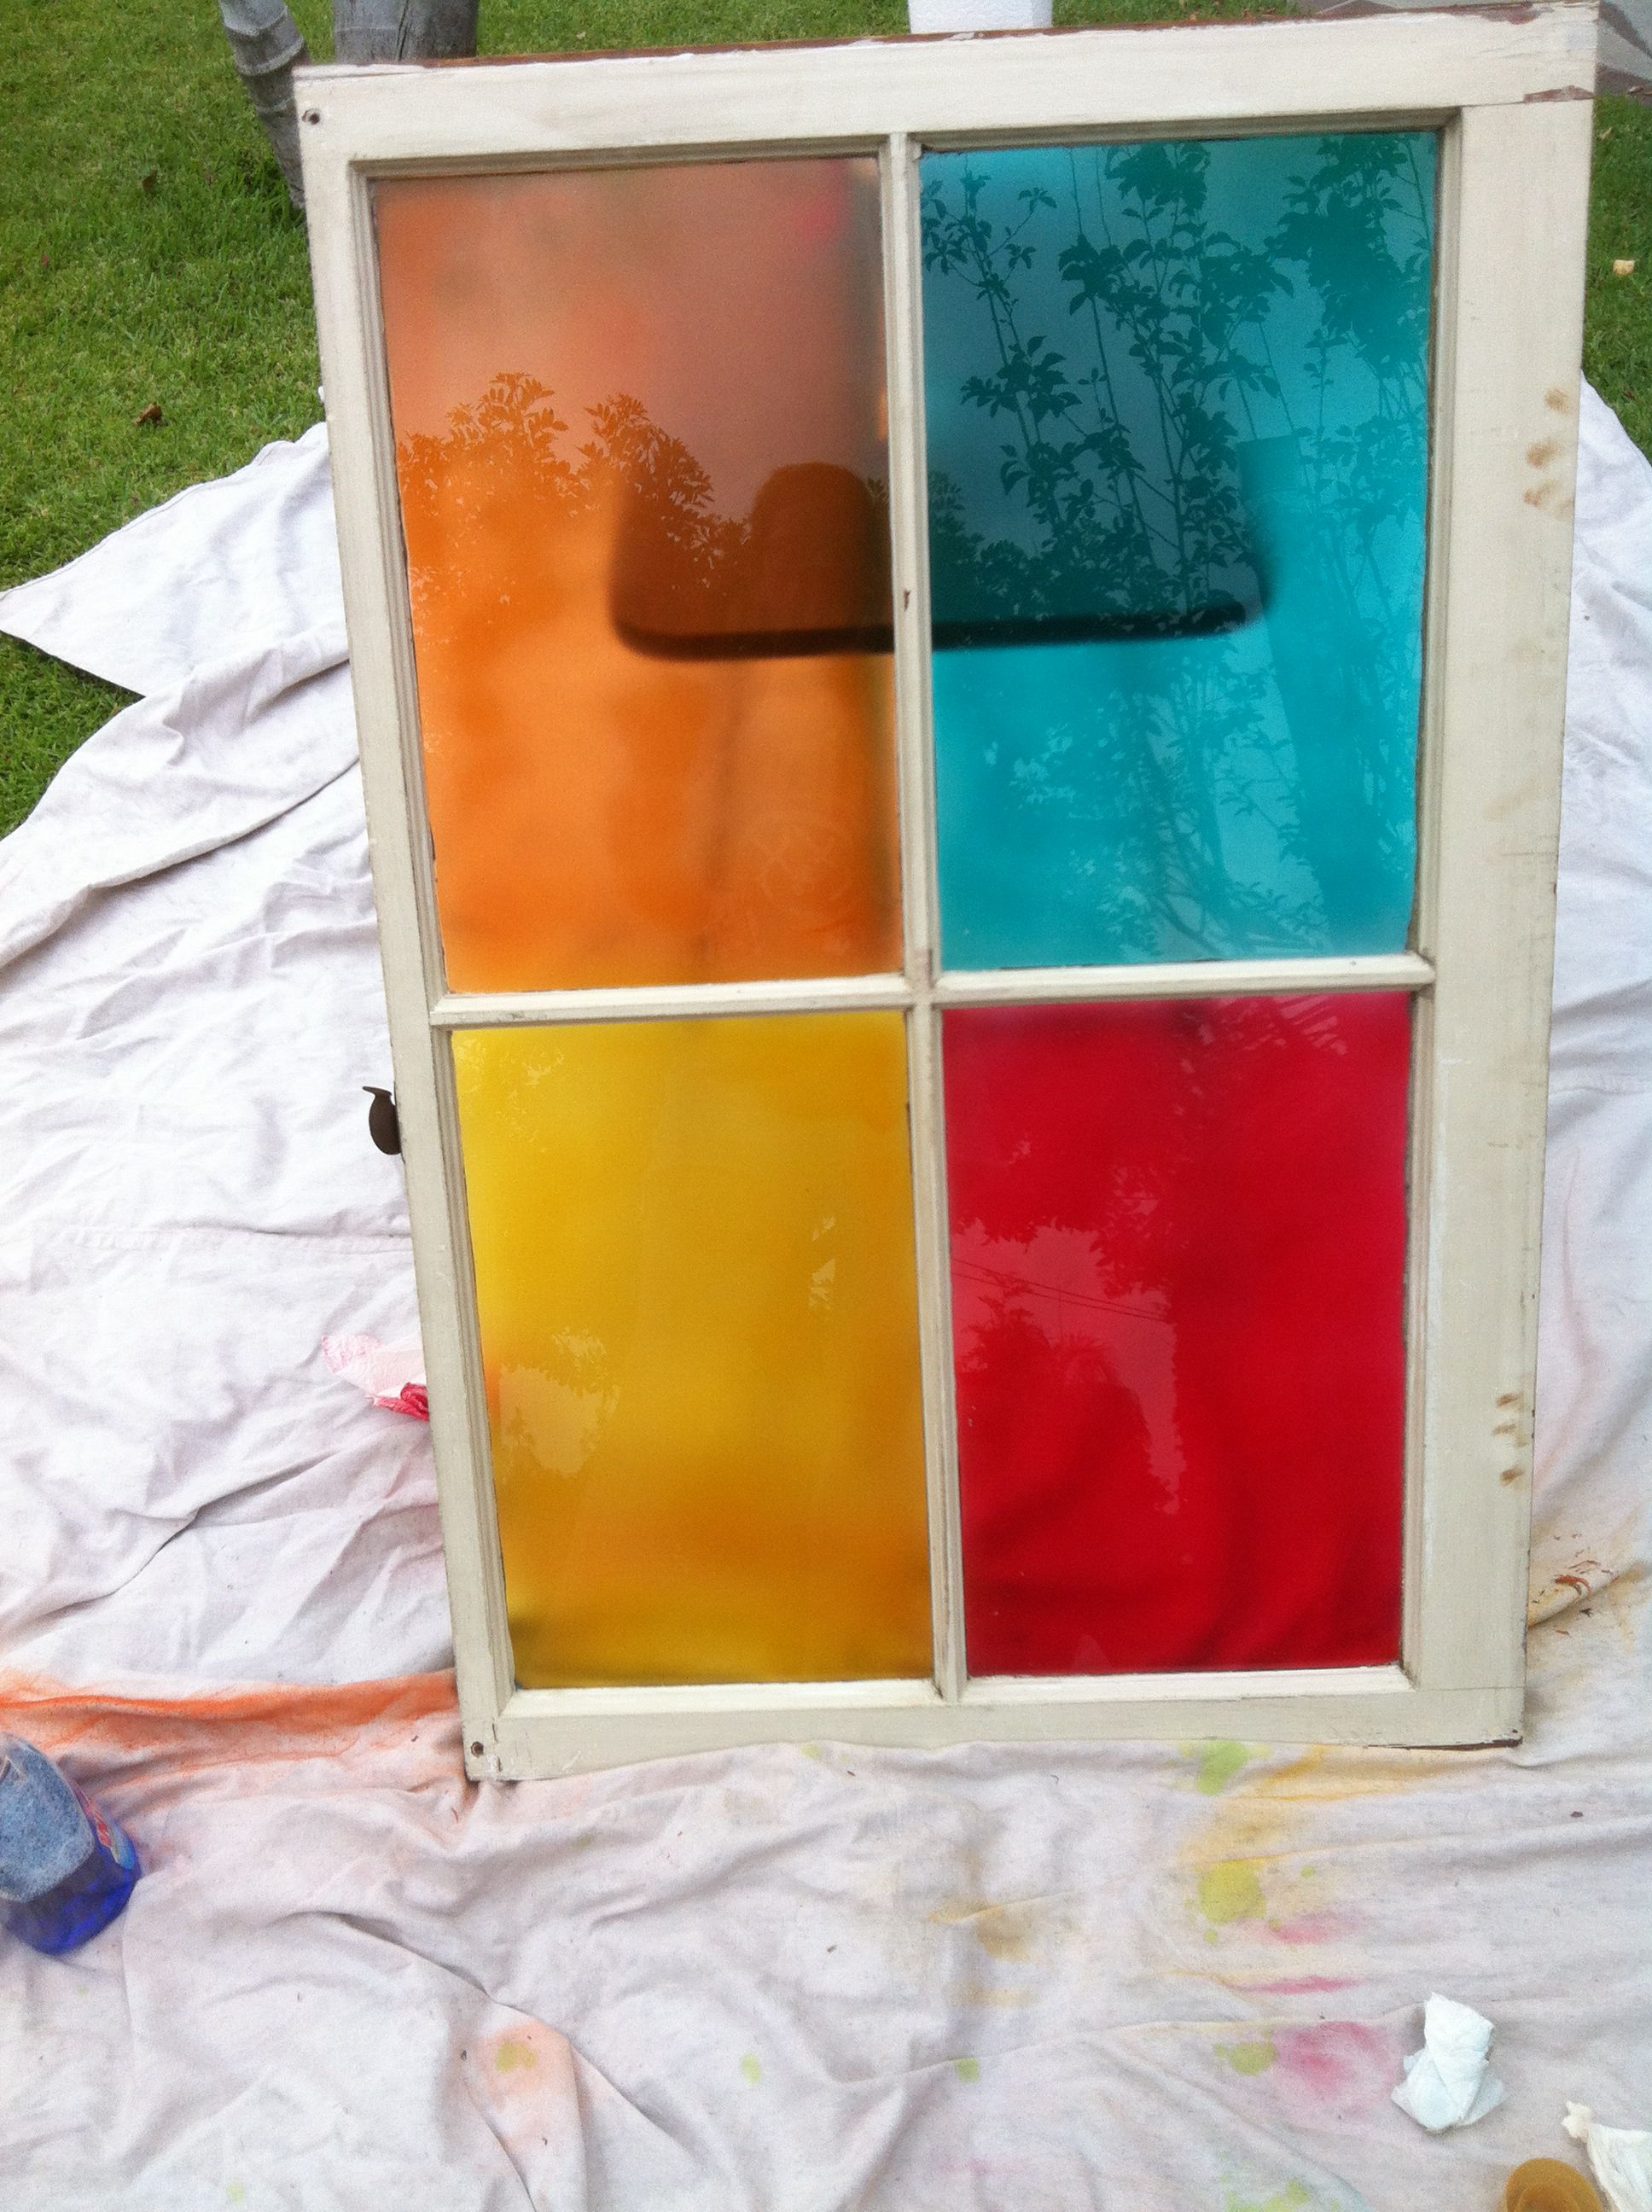 Diy Stained Glass On Old Window Pane With Design Master S Tint It Spray Paint Diy Stained Glass Window Painting On Glass Windows Stained Glass Diy